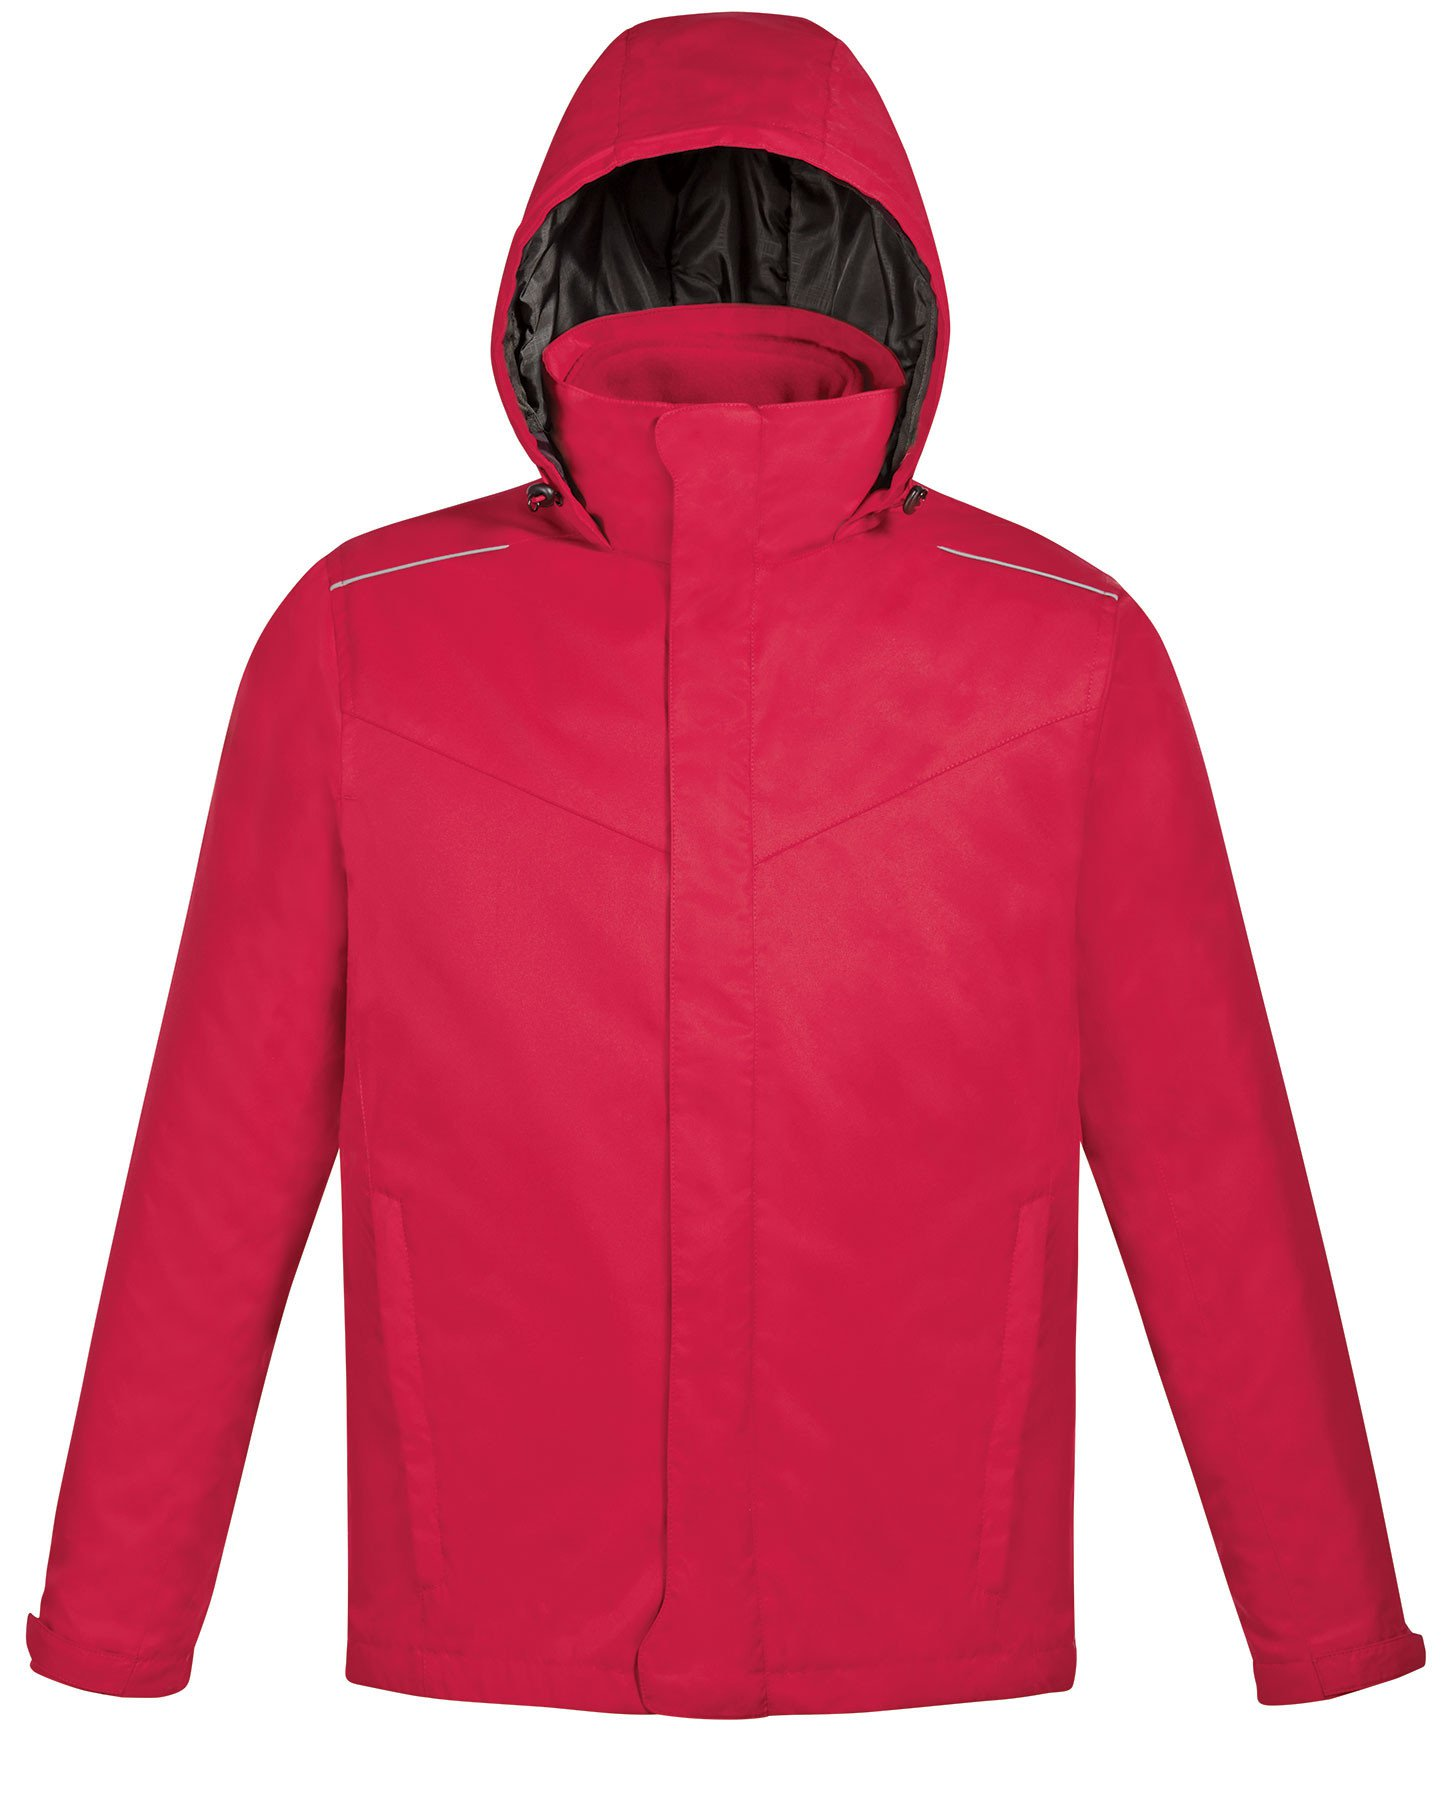 Ash City Region Men's 3-IN-1 Jacket With Fleece Liner - Xpromo.ca